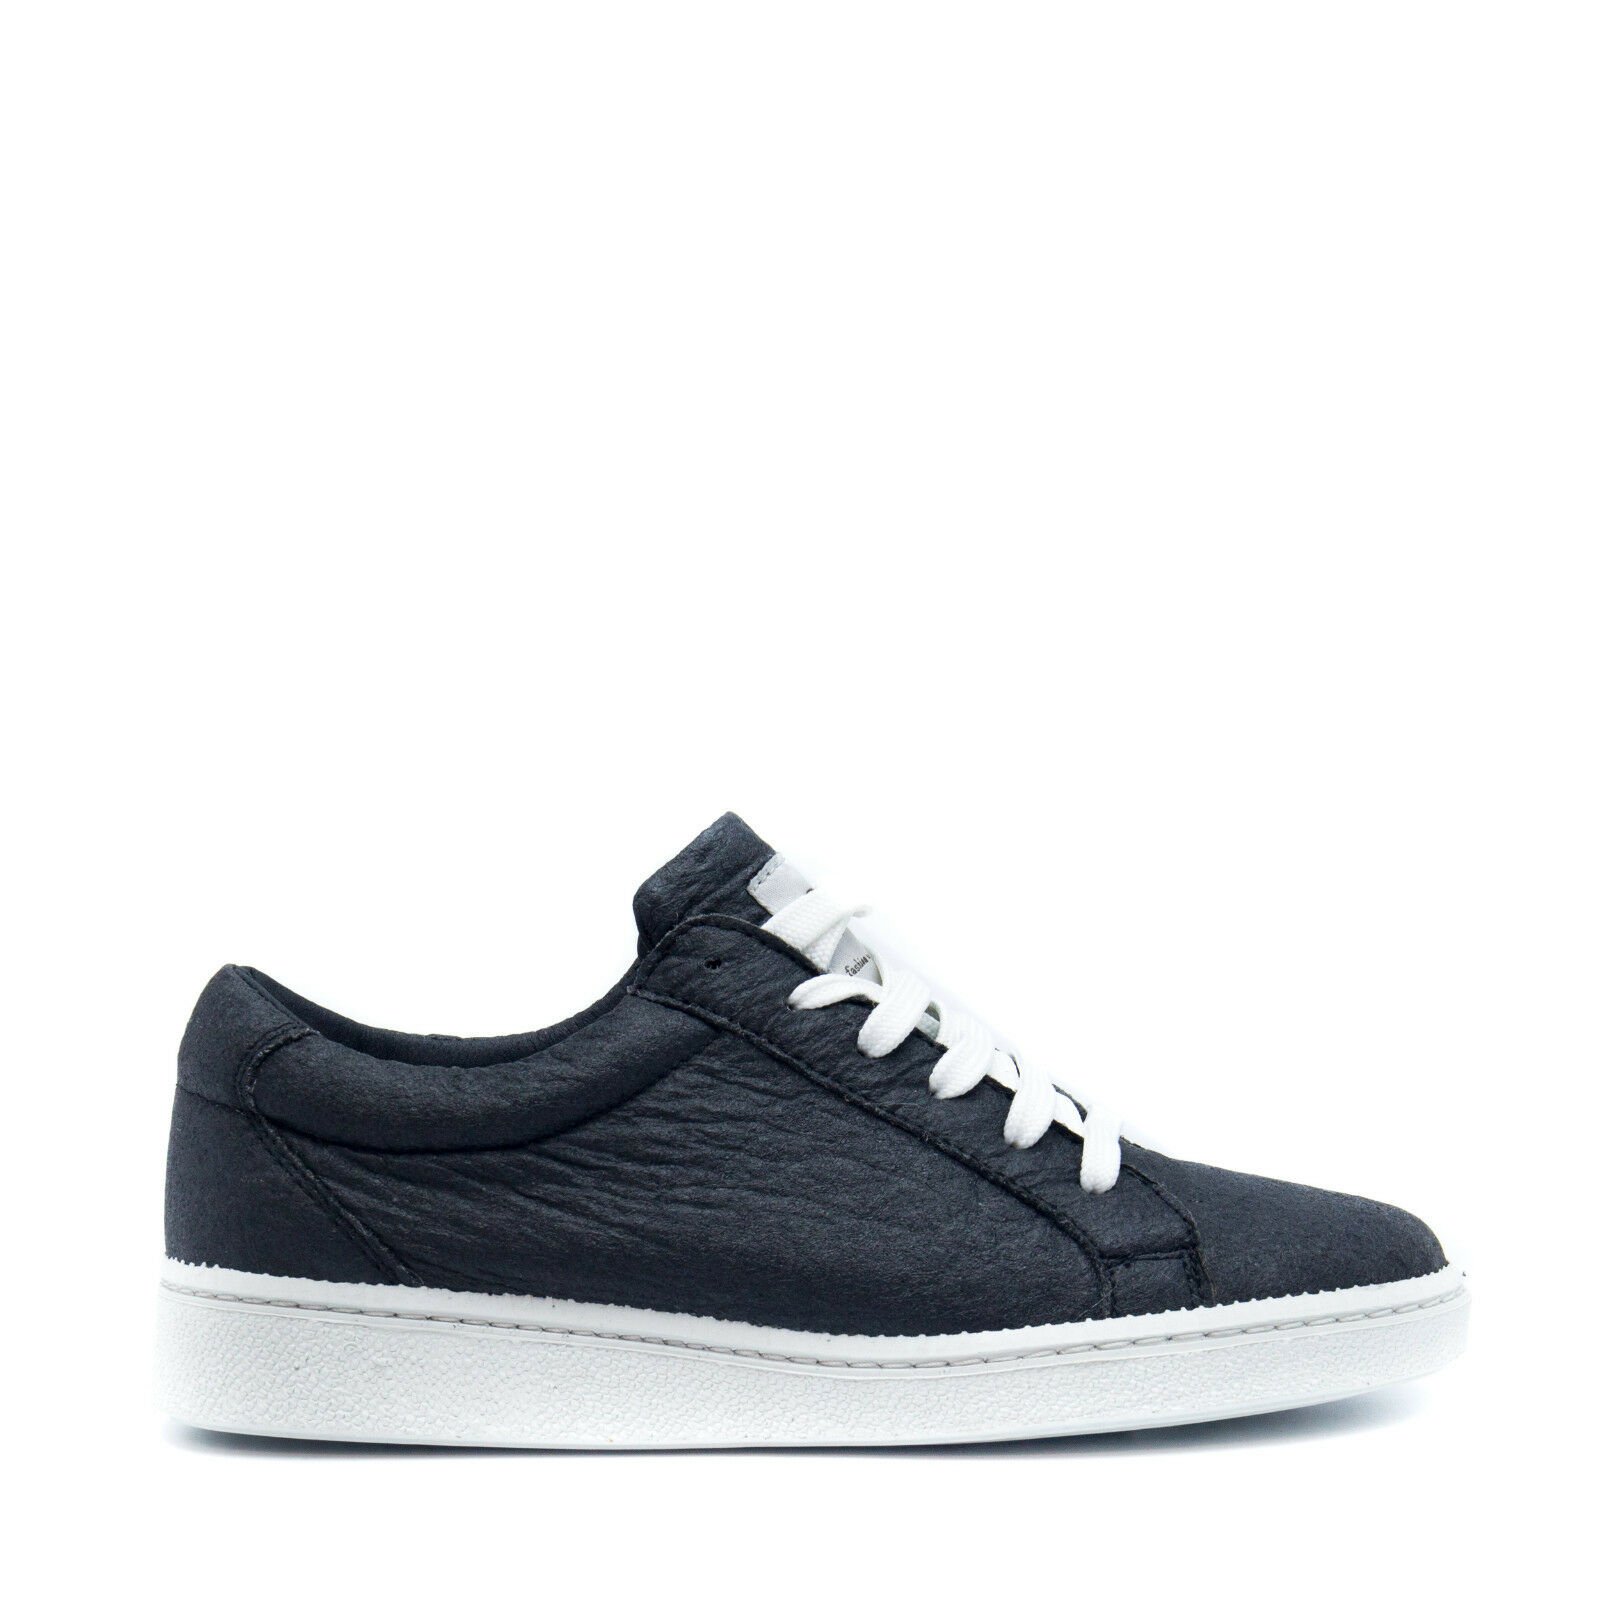 Vegan Turnschuhe basic with laces, laces, laces, made with organic fiber from pineapple leafs aafb5b